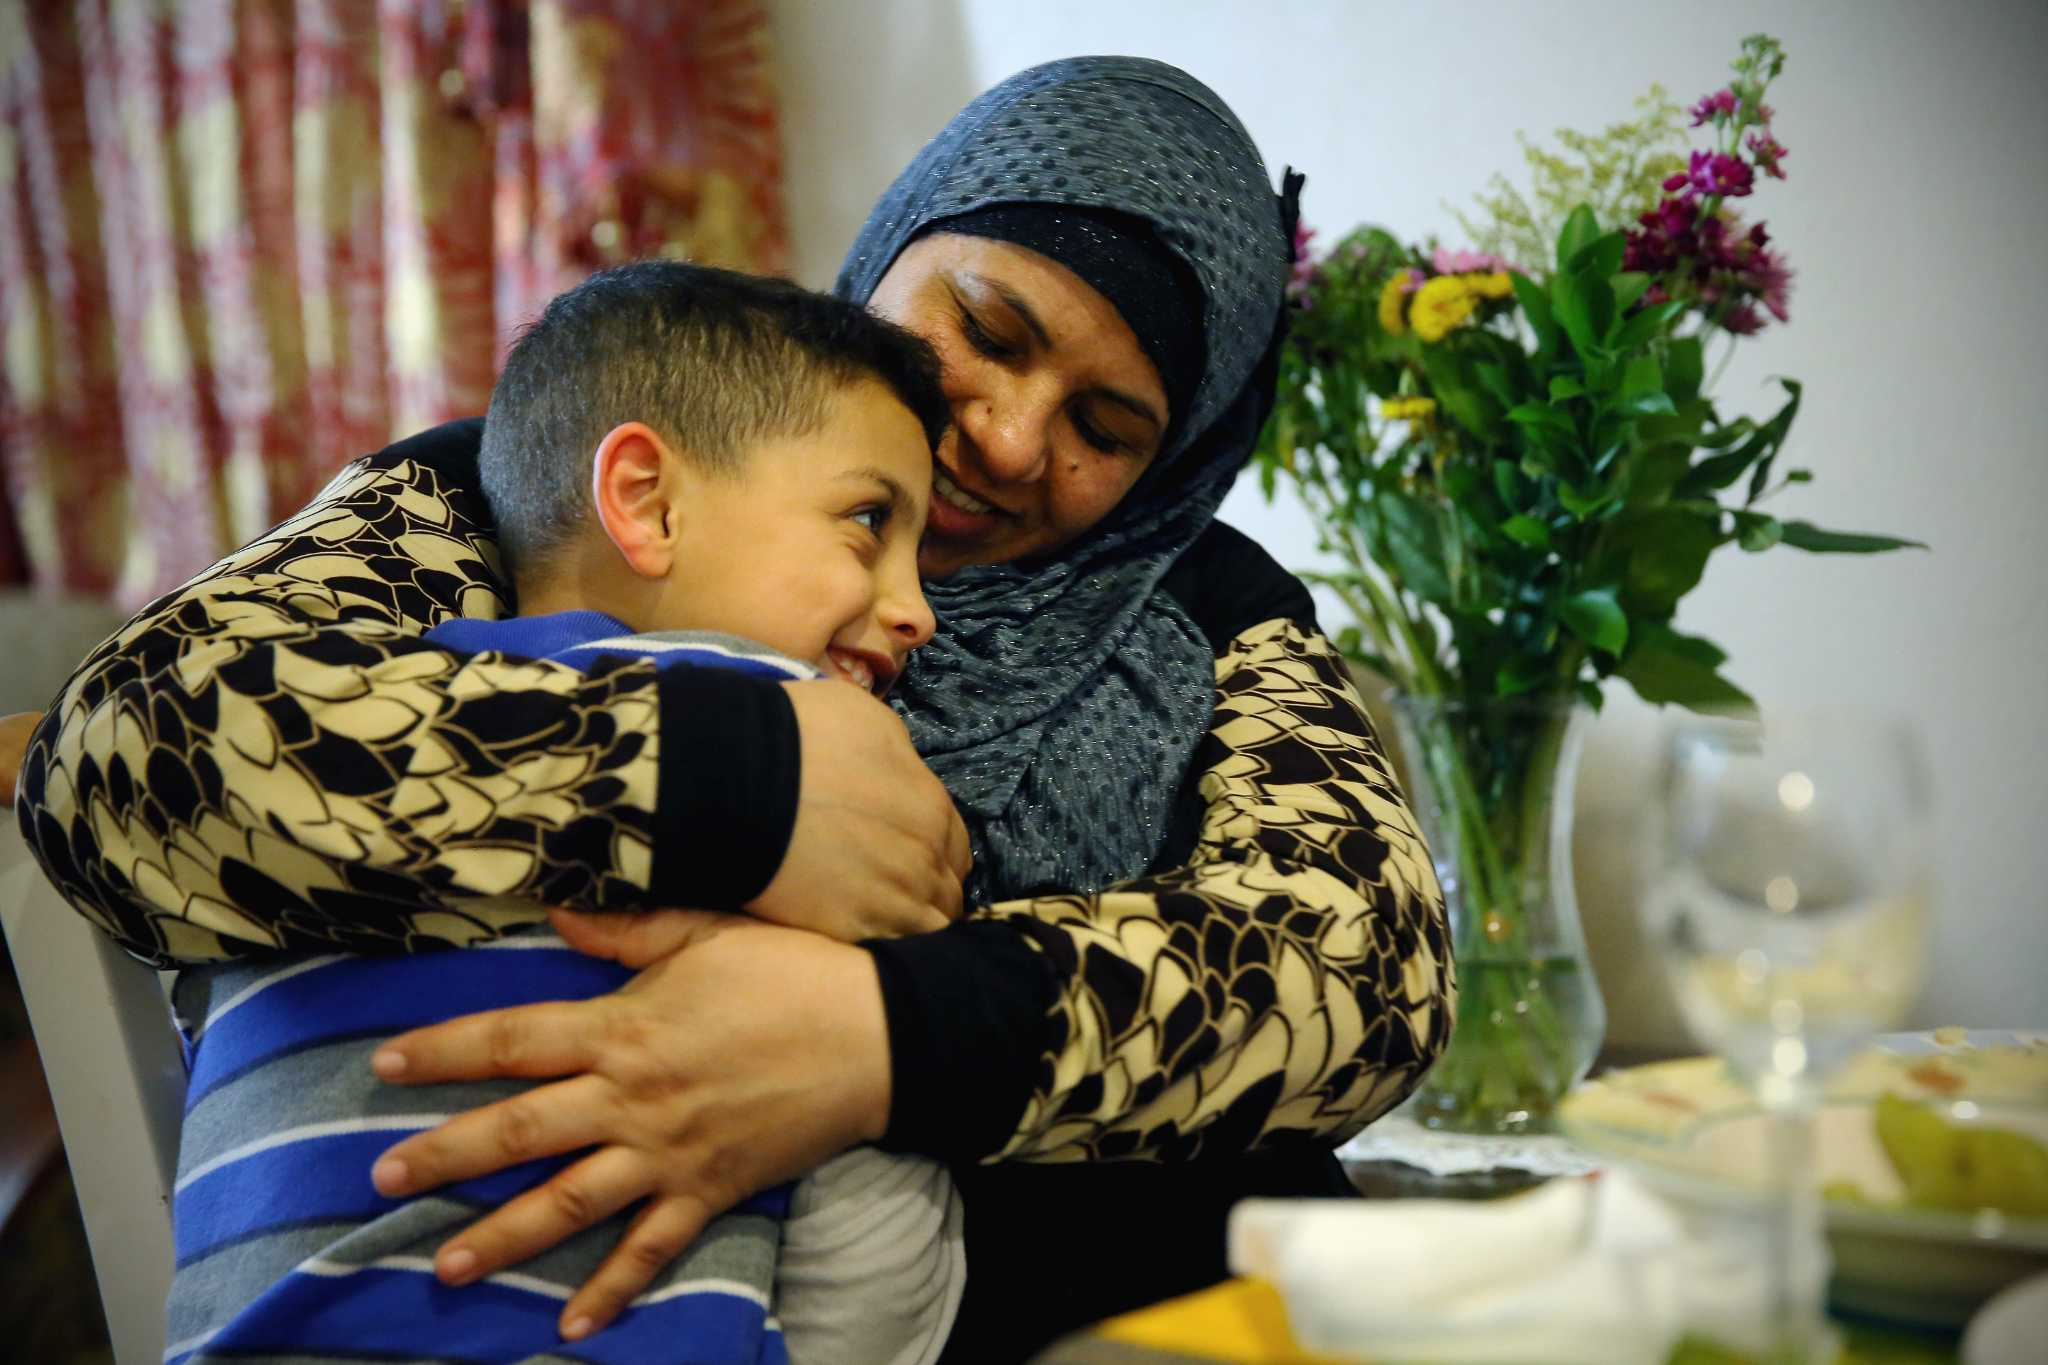 the life and struggles of syrian refugees One advantage of private programs, hosgood said, is the many volunteers who have been introducing syrian refugees to local communities, potluck dinners, rental-housing options, informal language.